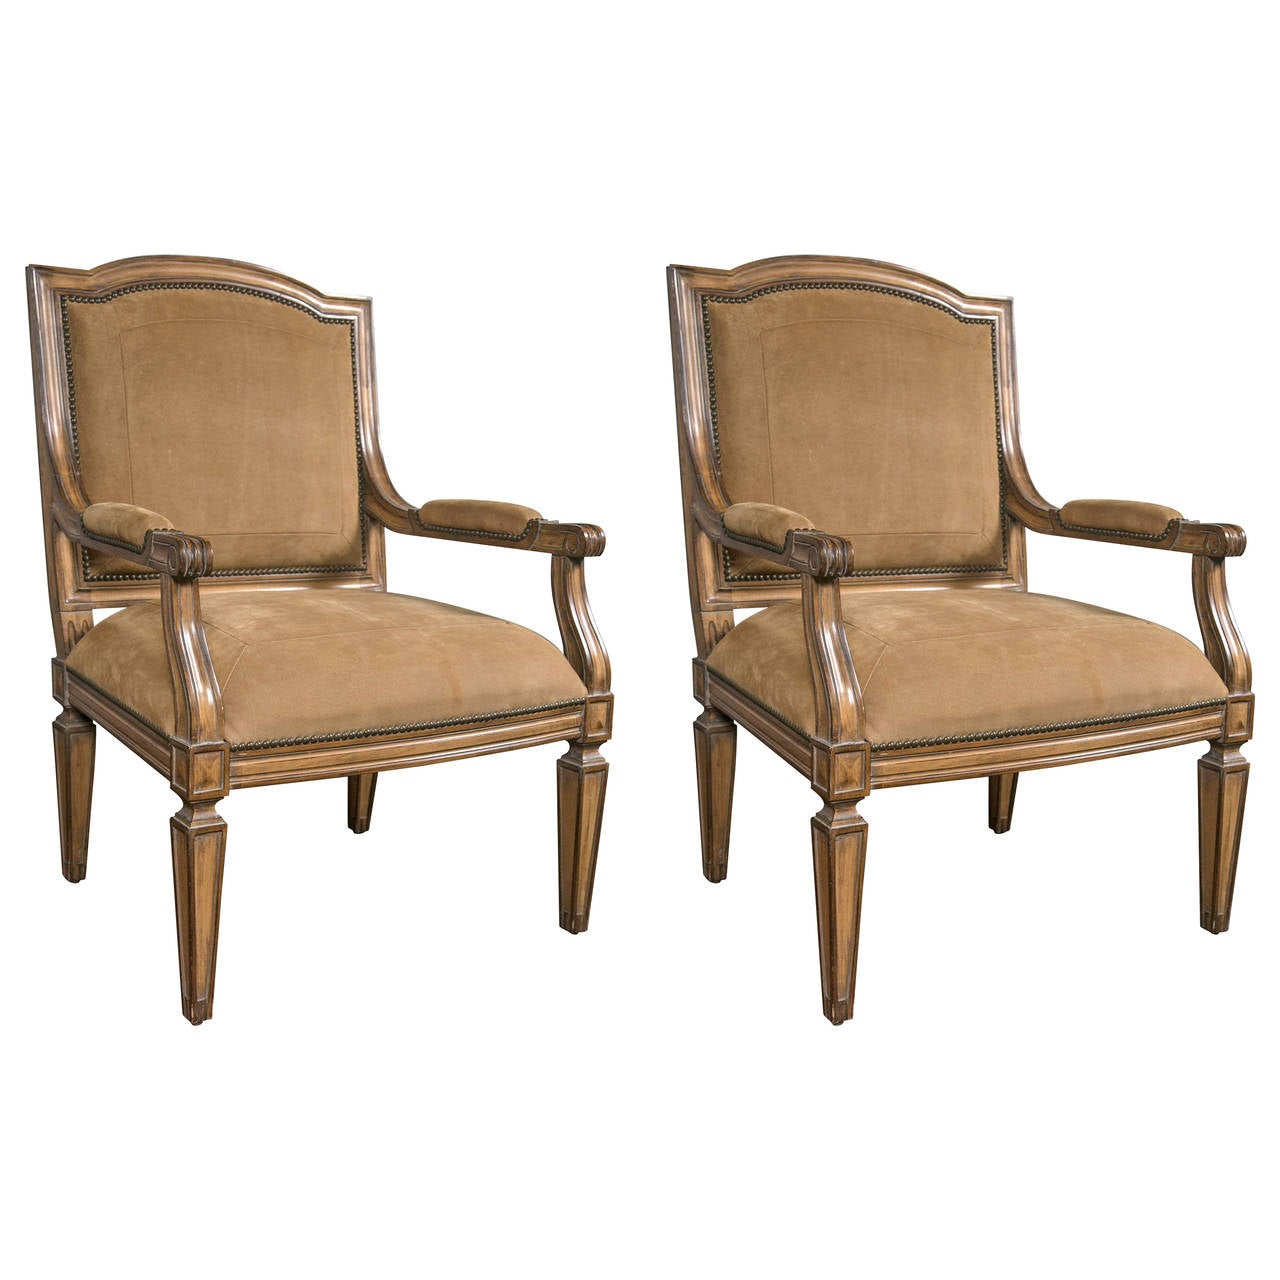 Pair of Kreiss Custom Quality Louis XVI Style Armchairs with Suede Upholstery